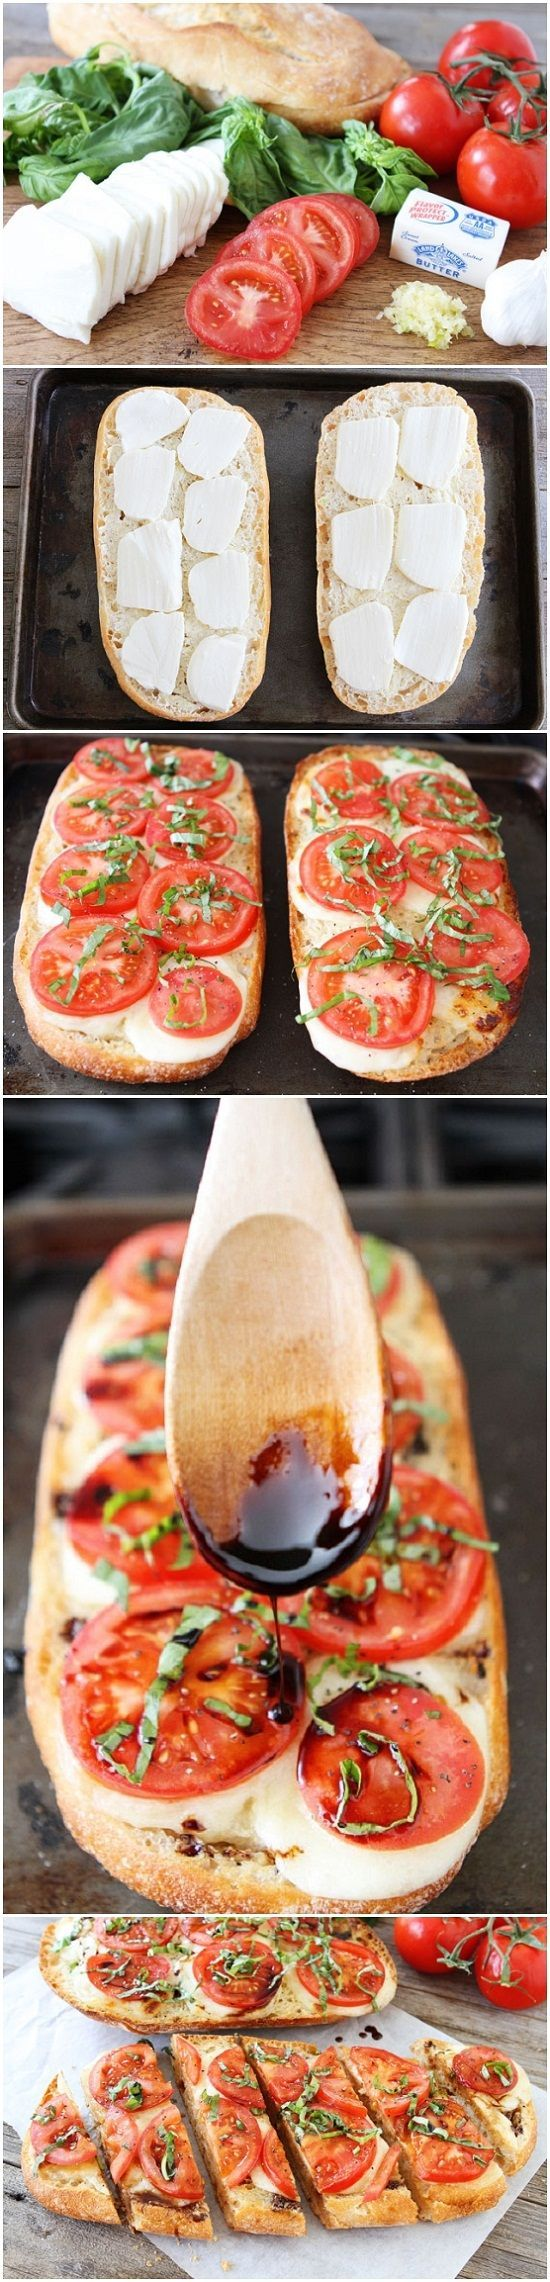 Caprese Garlic Bread. #recipes looks delicious!! Why not pair with a glass of…